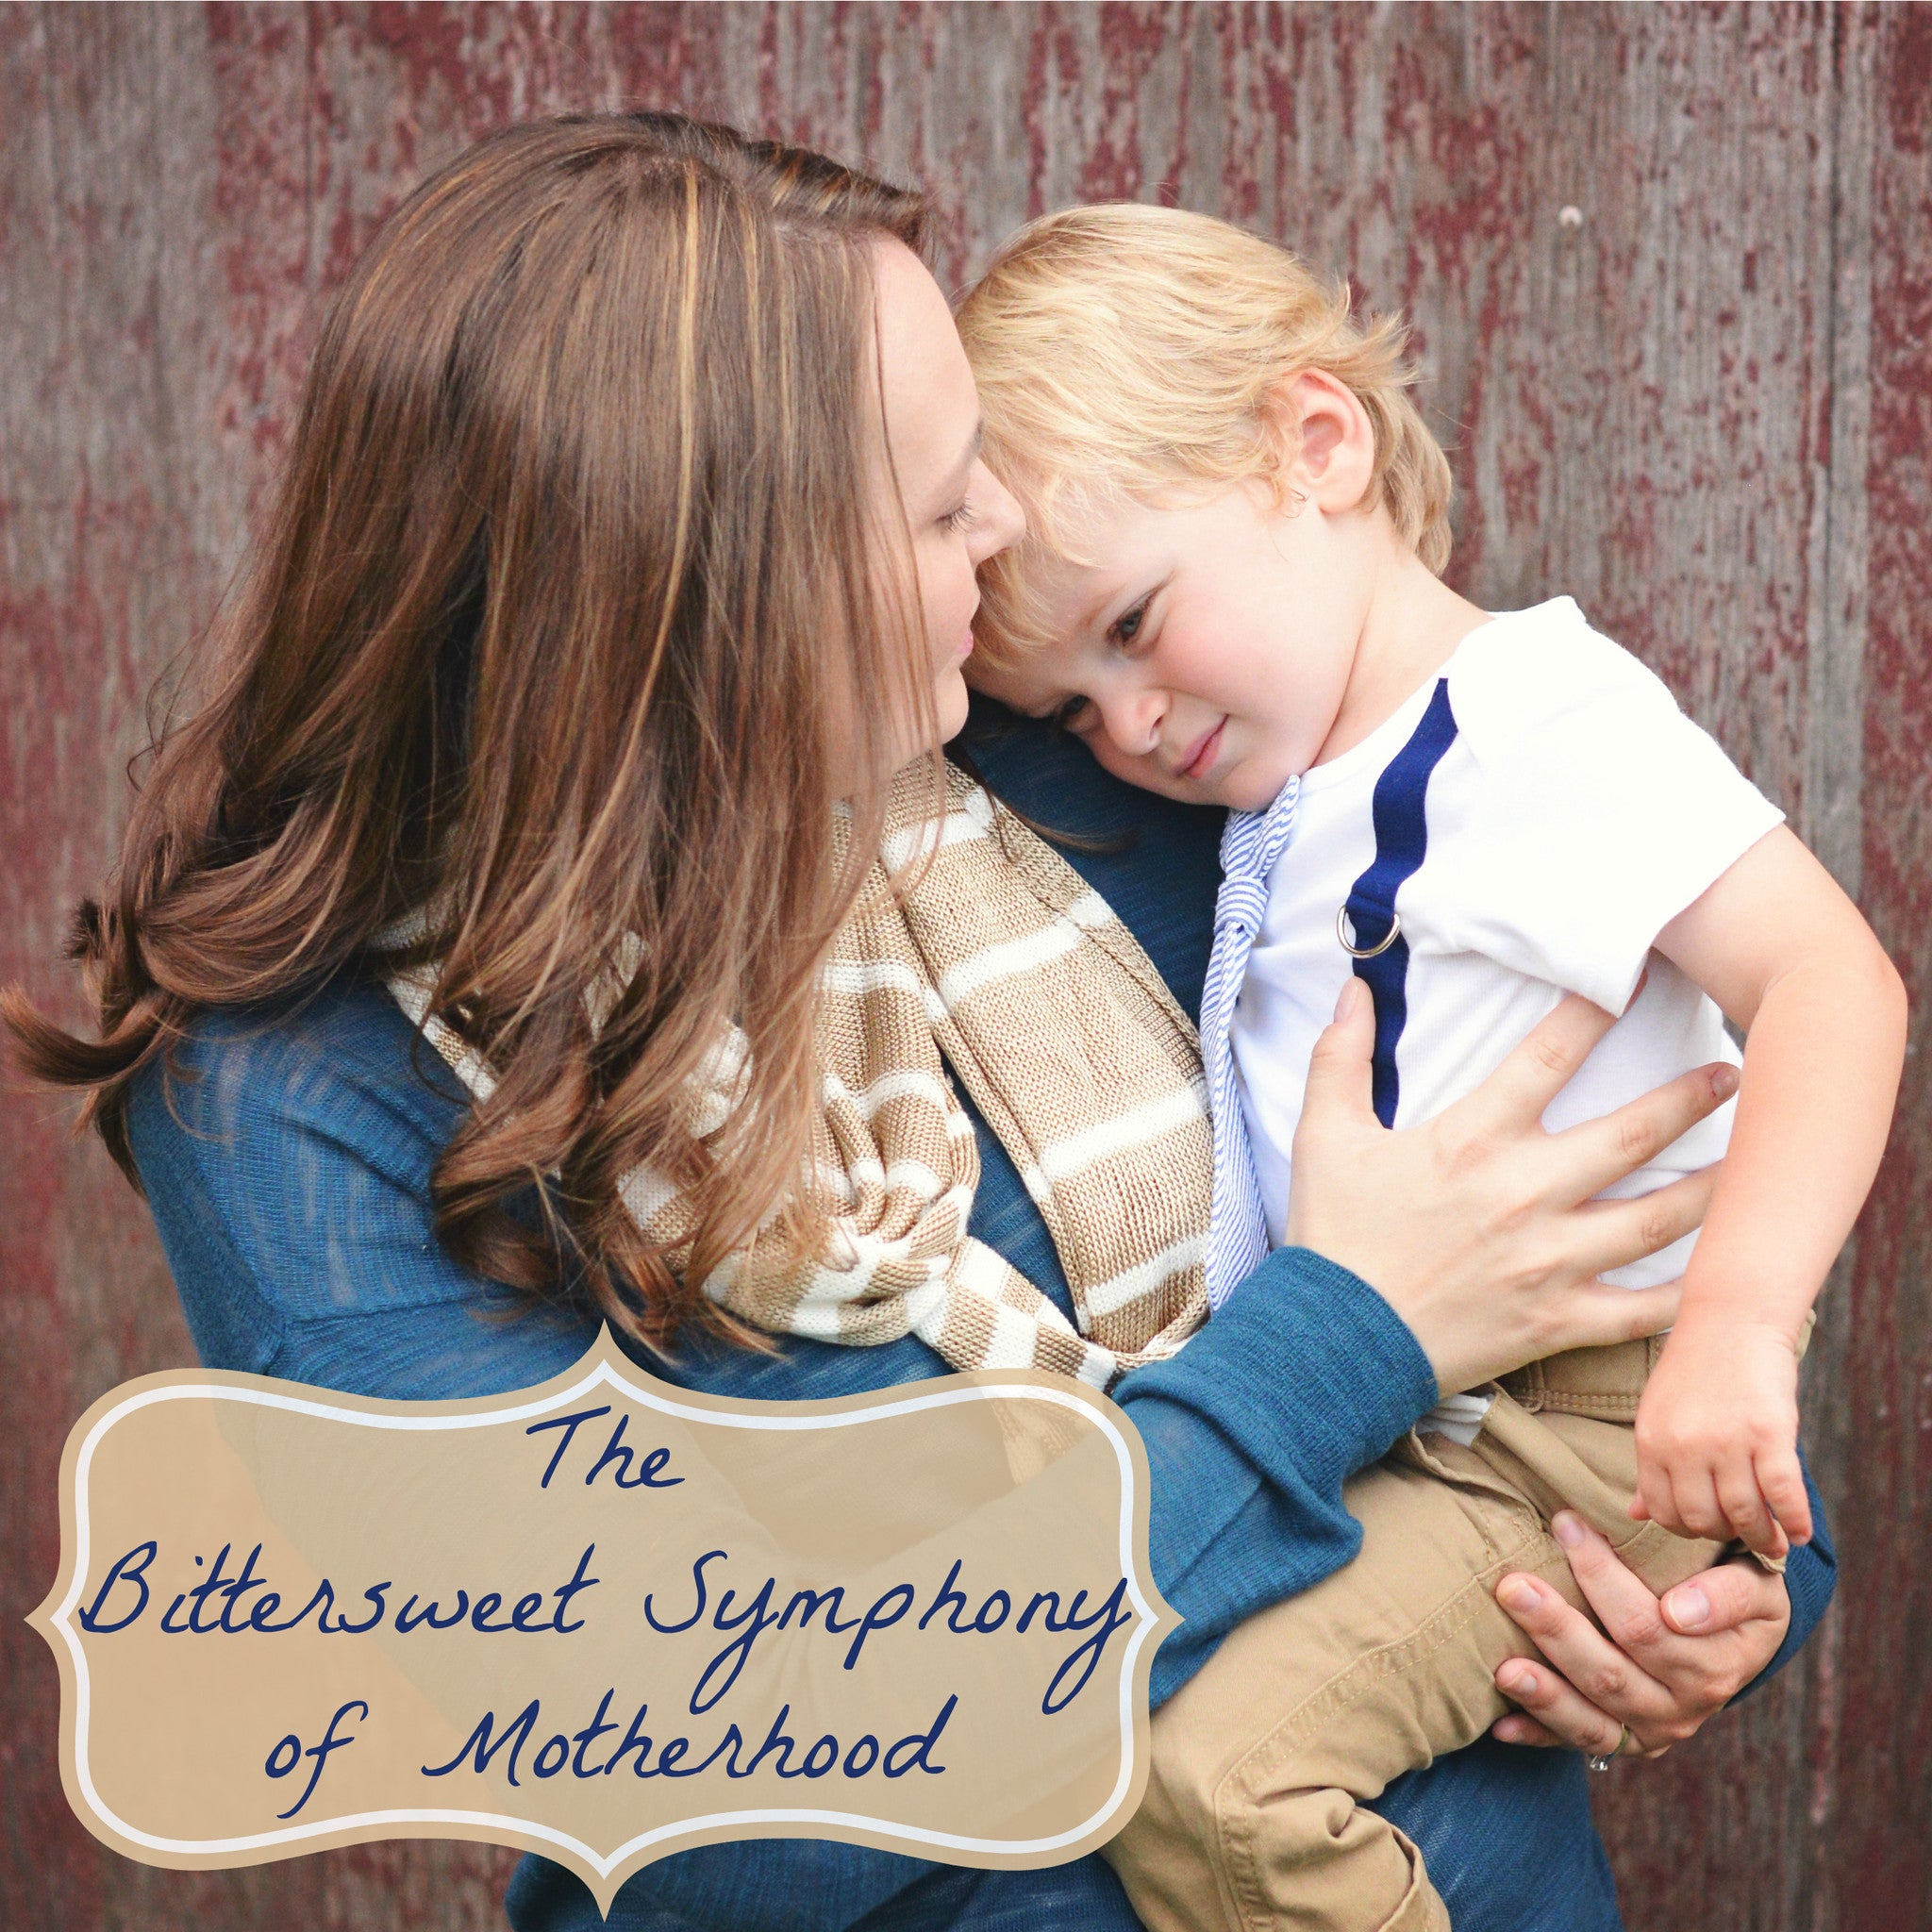 The Bittersweet Symphony of Motherhood